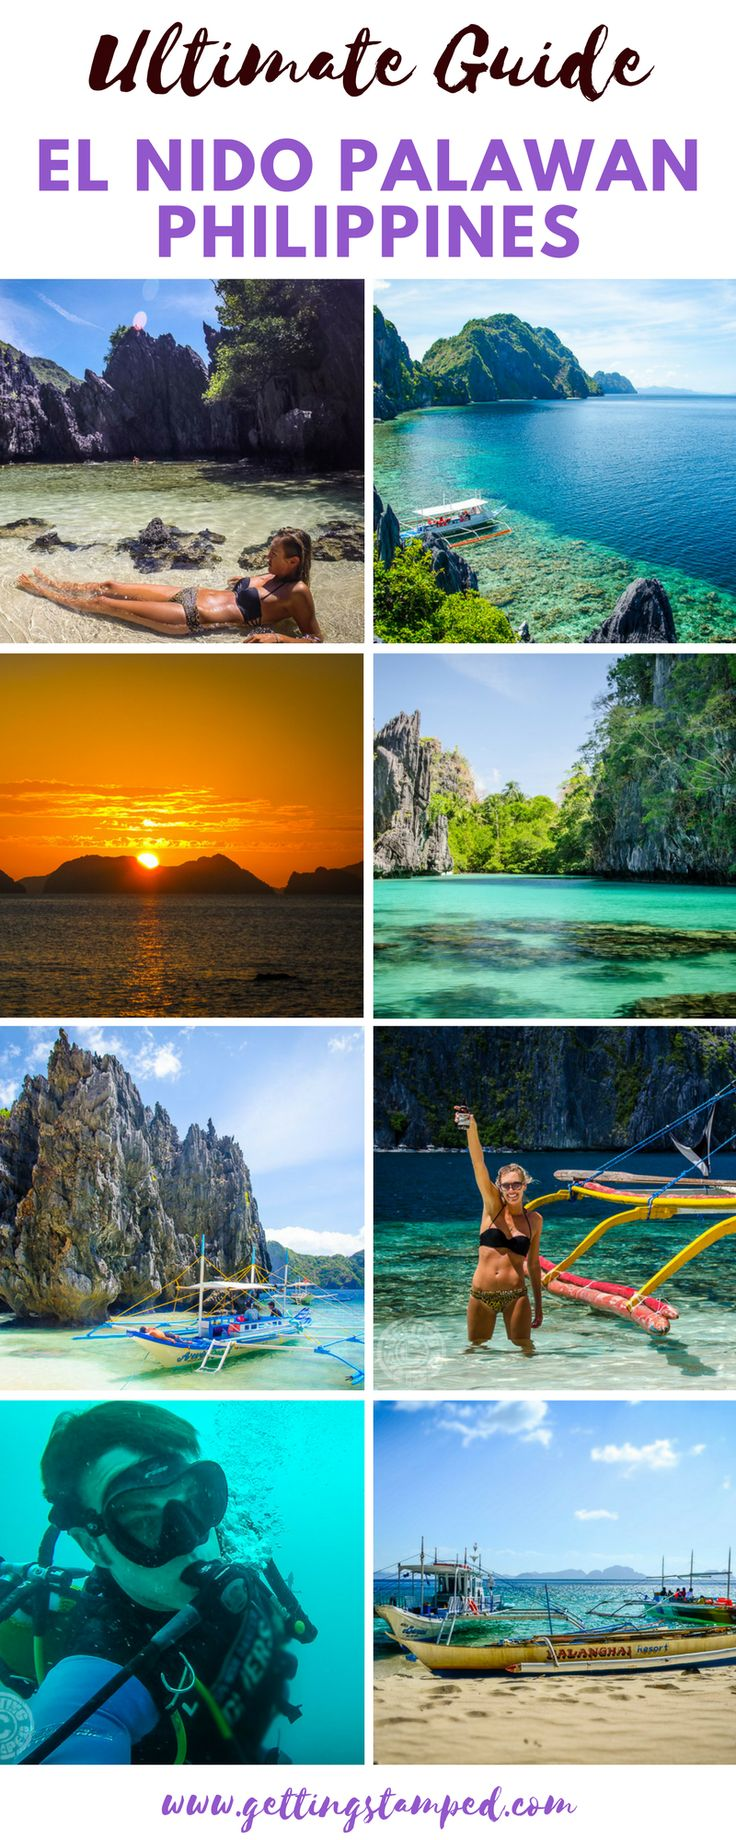 El Nido #Palawan #Philippines has some of the most beautiful scenery we have ever encountered. This cluster of islands is off the tip of the Palawan Island is full of dramatic rock formations and surrounded by bright blue waters   || Getting Stamped - Couple #Travel & #Photography #Blog